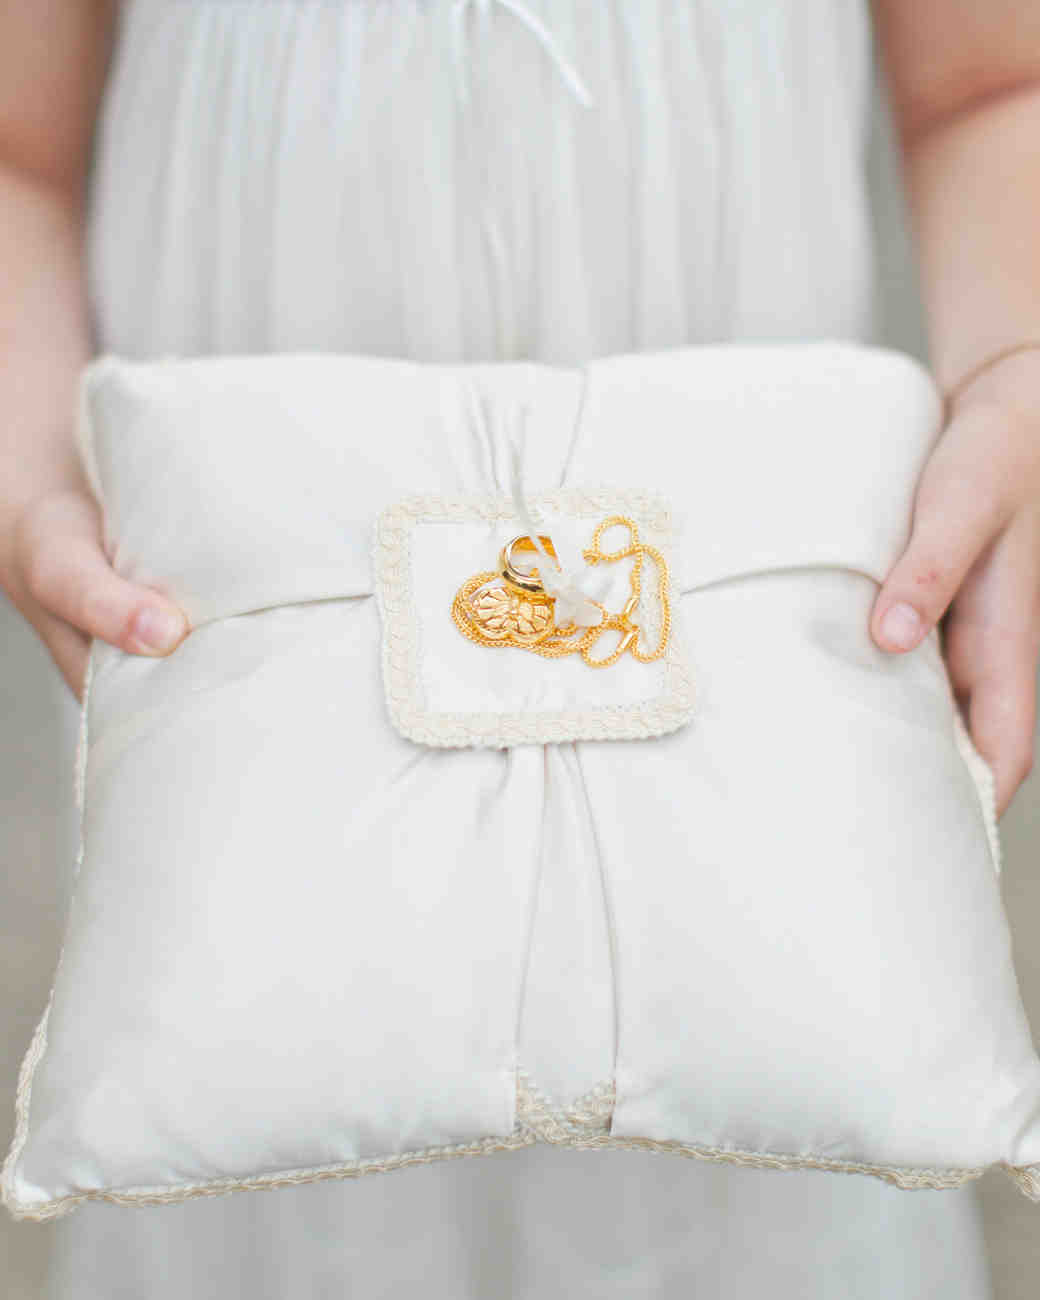 hayley-andrew-wedding-ringpillow-0714.jpg